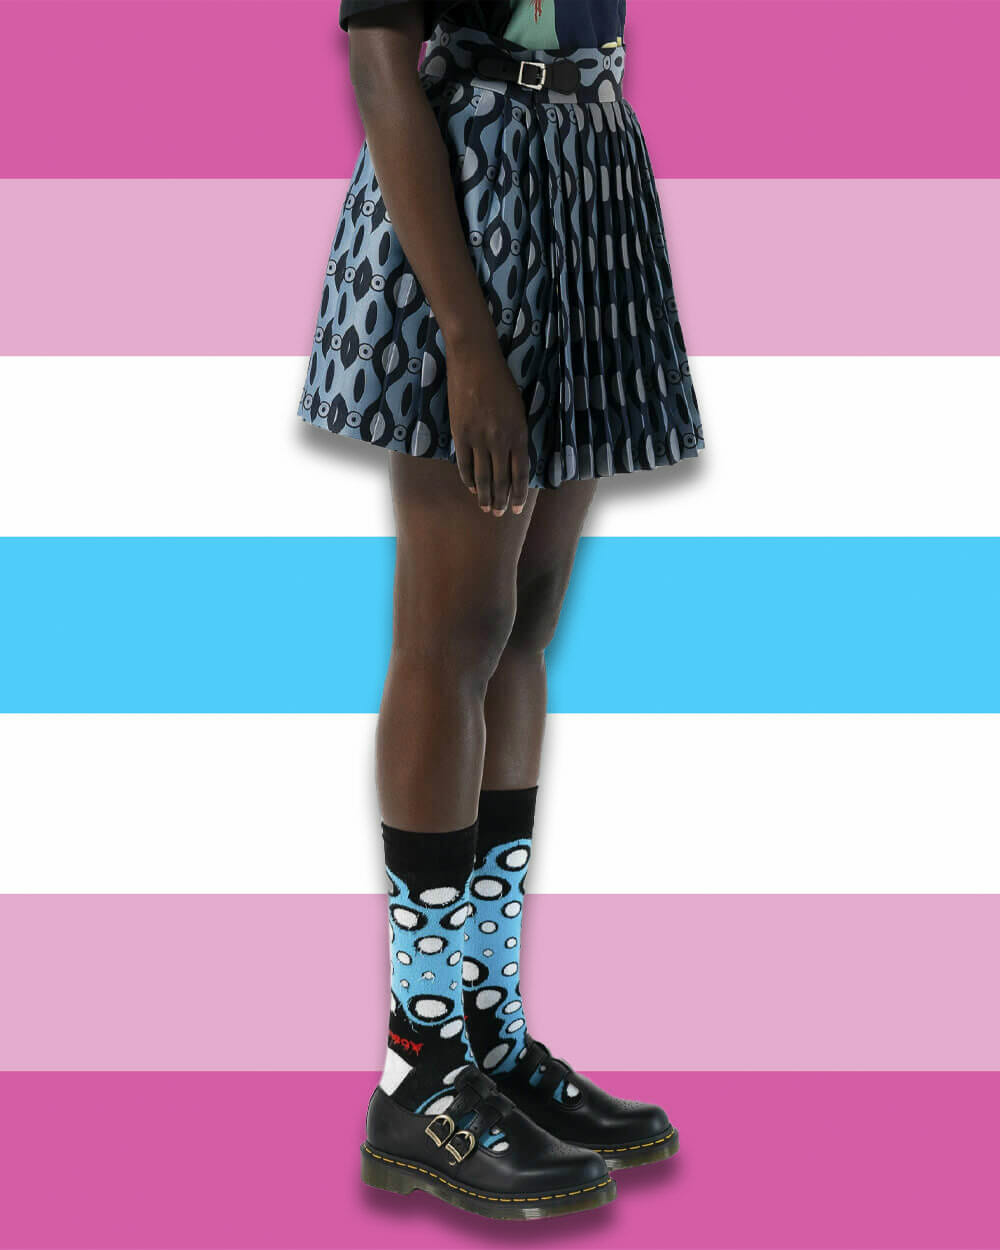 Femboy Outfits Loverboy skirts